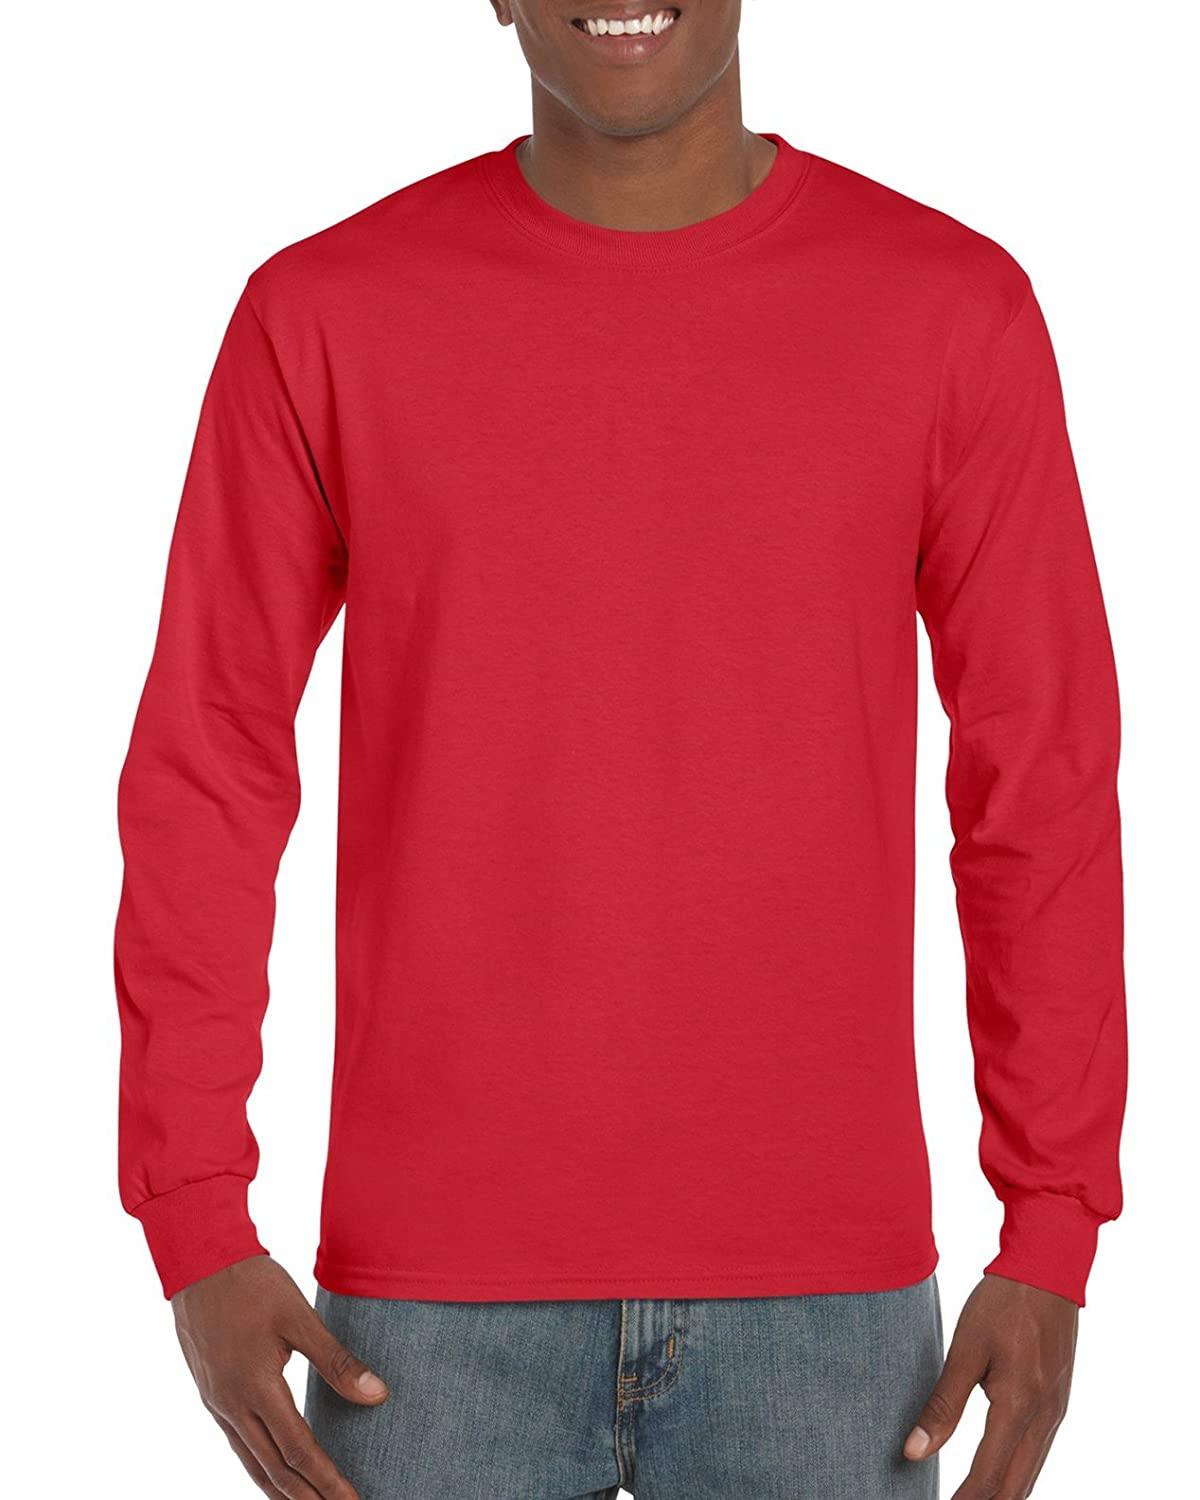 Gildan Men's Ultra Cotton Jersey Long Sleeve Tee Gildan Men's Activewear G2400